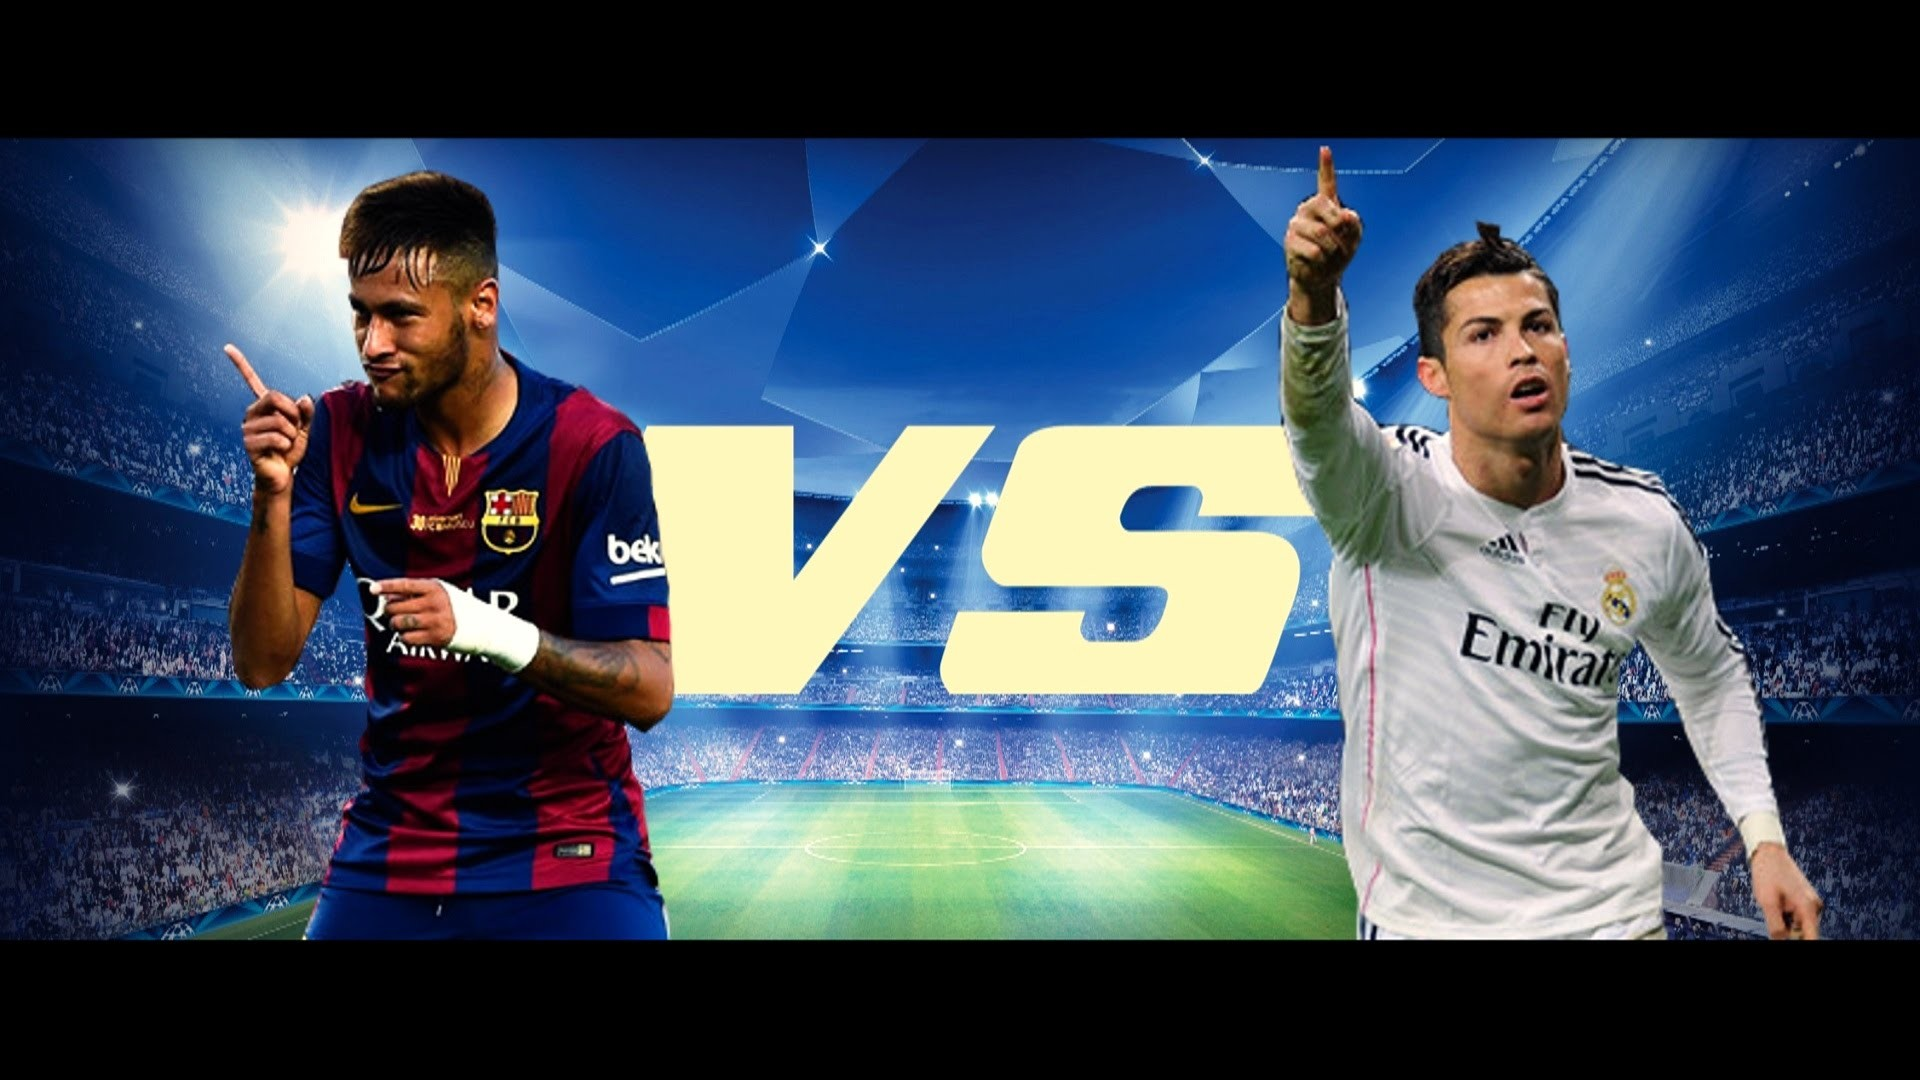 Messi Neymar Ronaldo Wallpaper (81+ images)